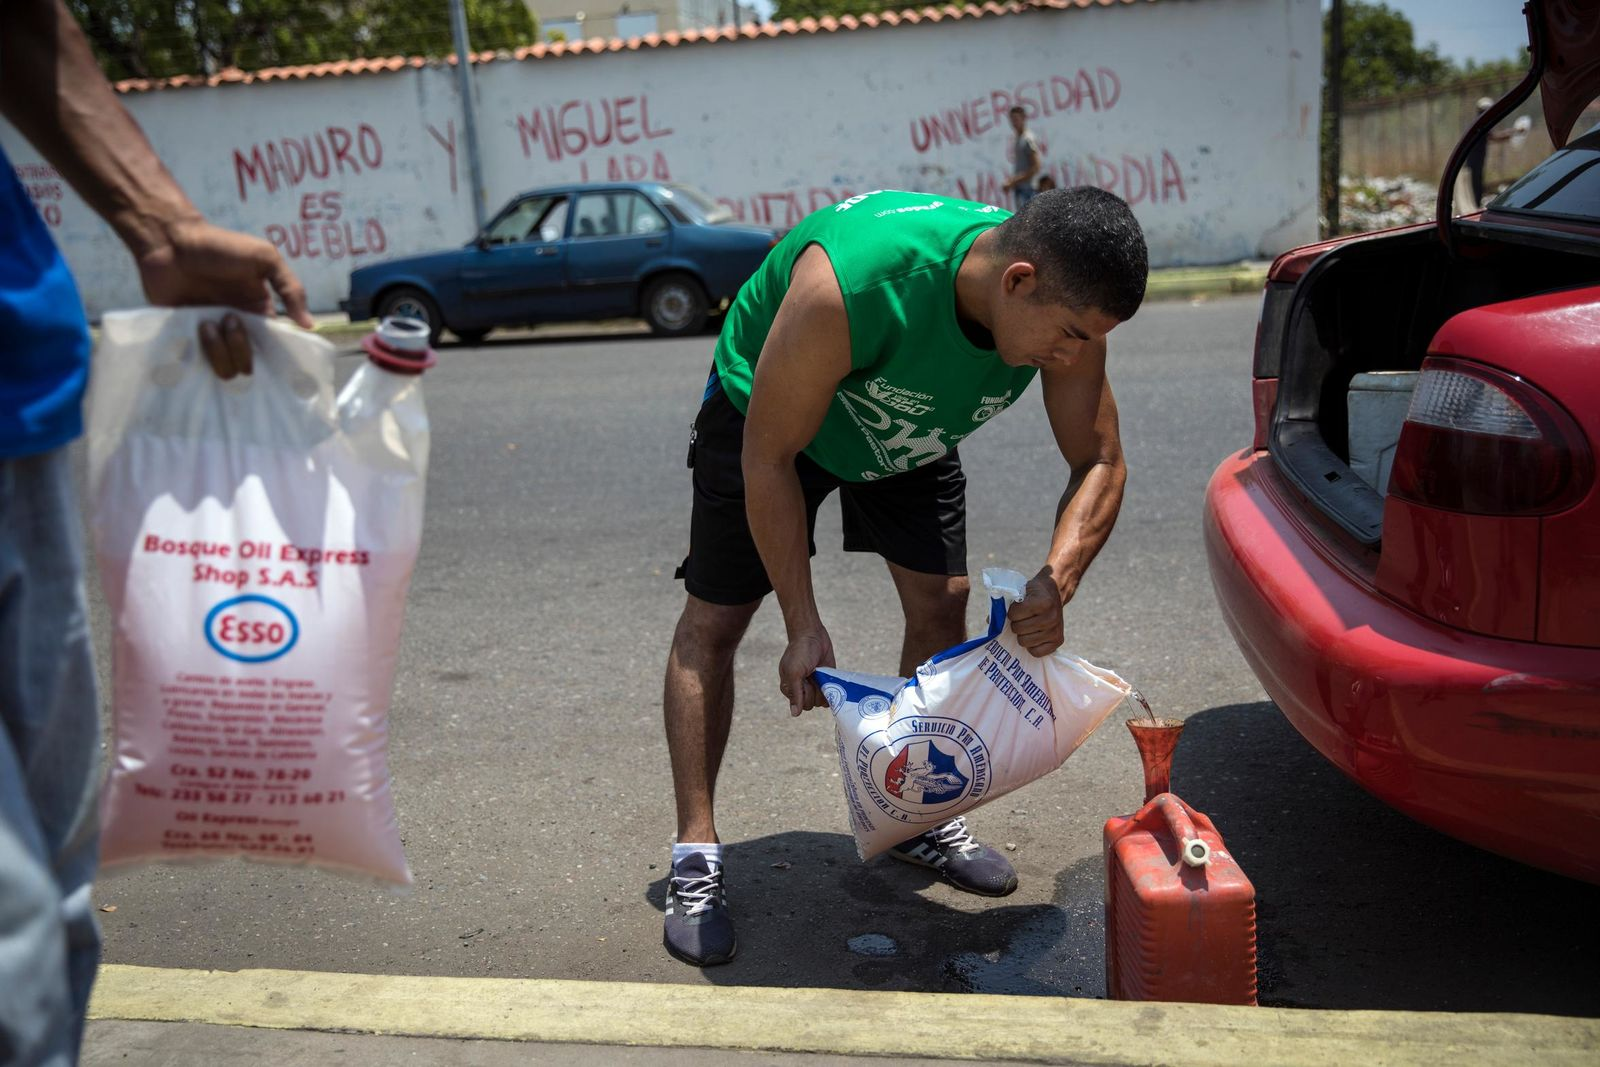 Jesus Gonzales fills a container with bagged gasoline he bought at extra cost at a fuel station, in order to not wait in the longer line in Cabimas, Venezuela, Saturday, May 18, 2019.(AP Photo/Rodrigo Abd)